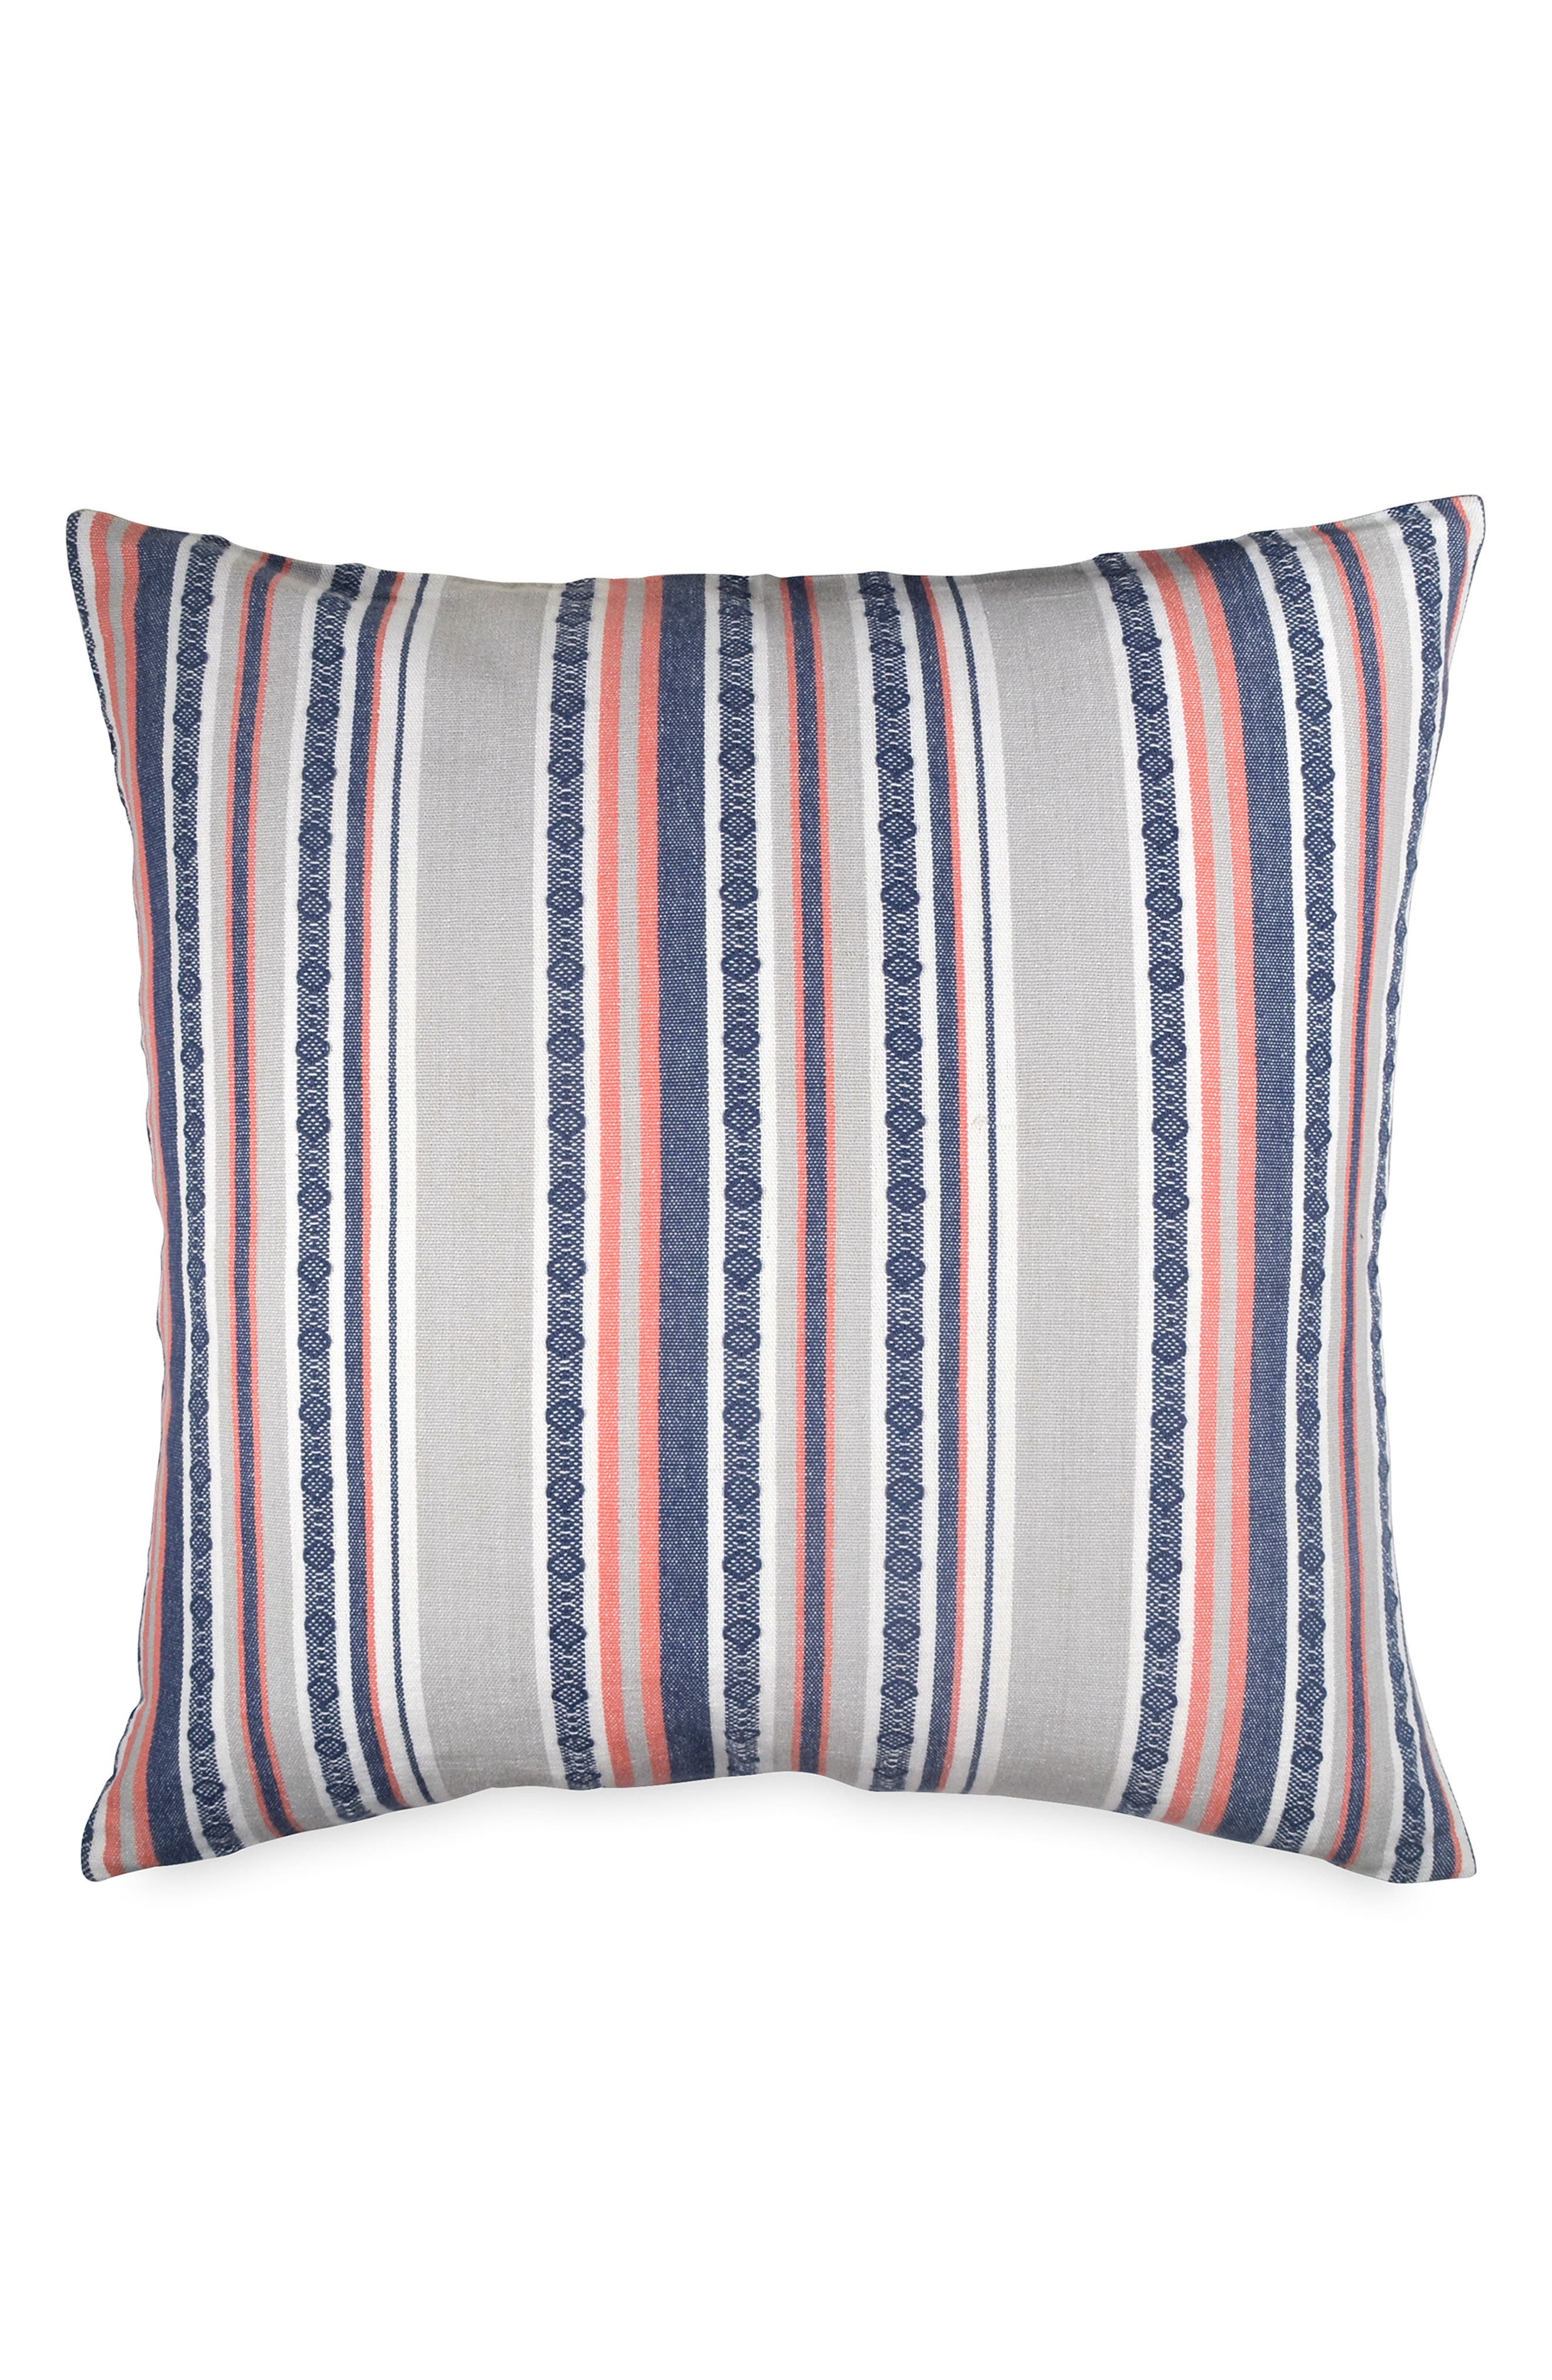 Woven Accent Pillow,                         Main,                         color, Grey